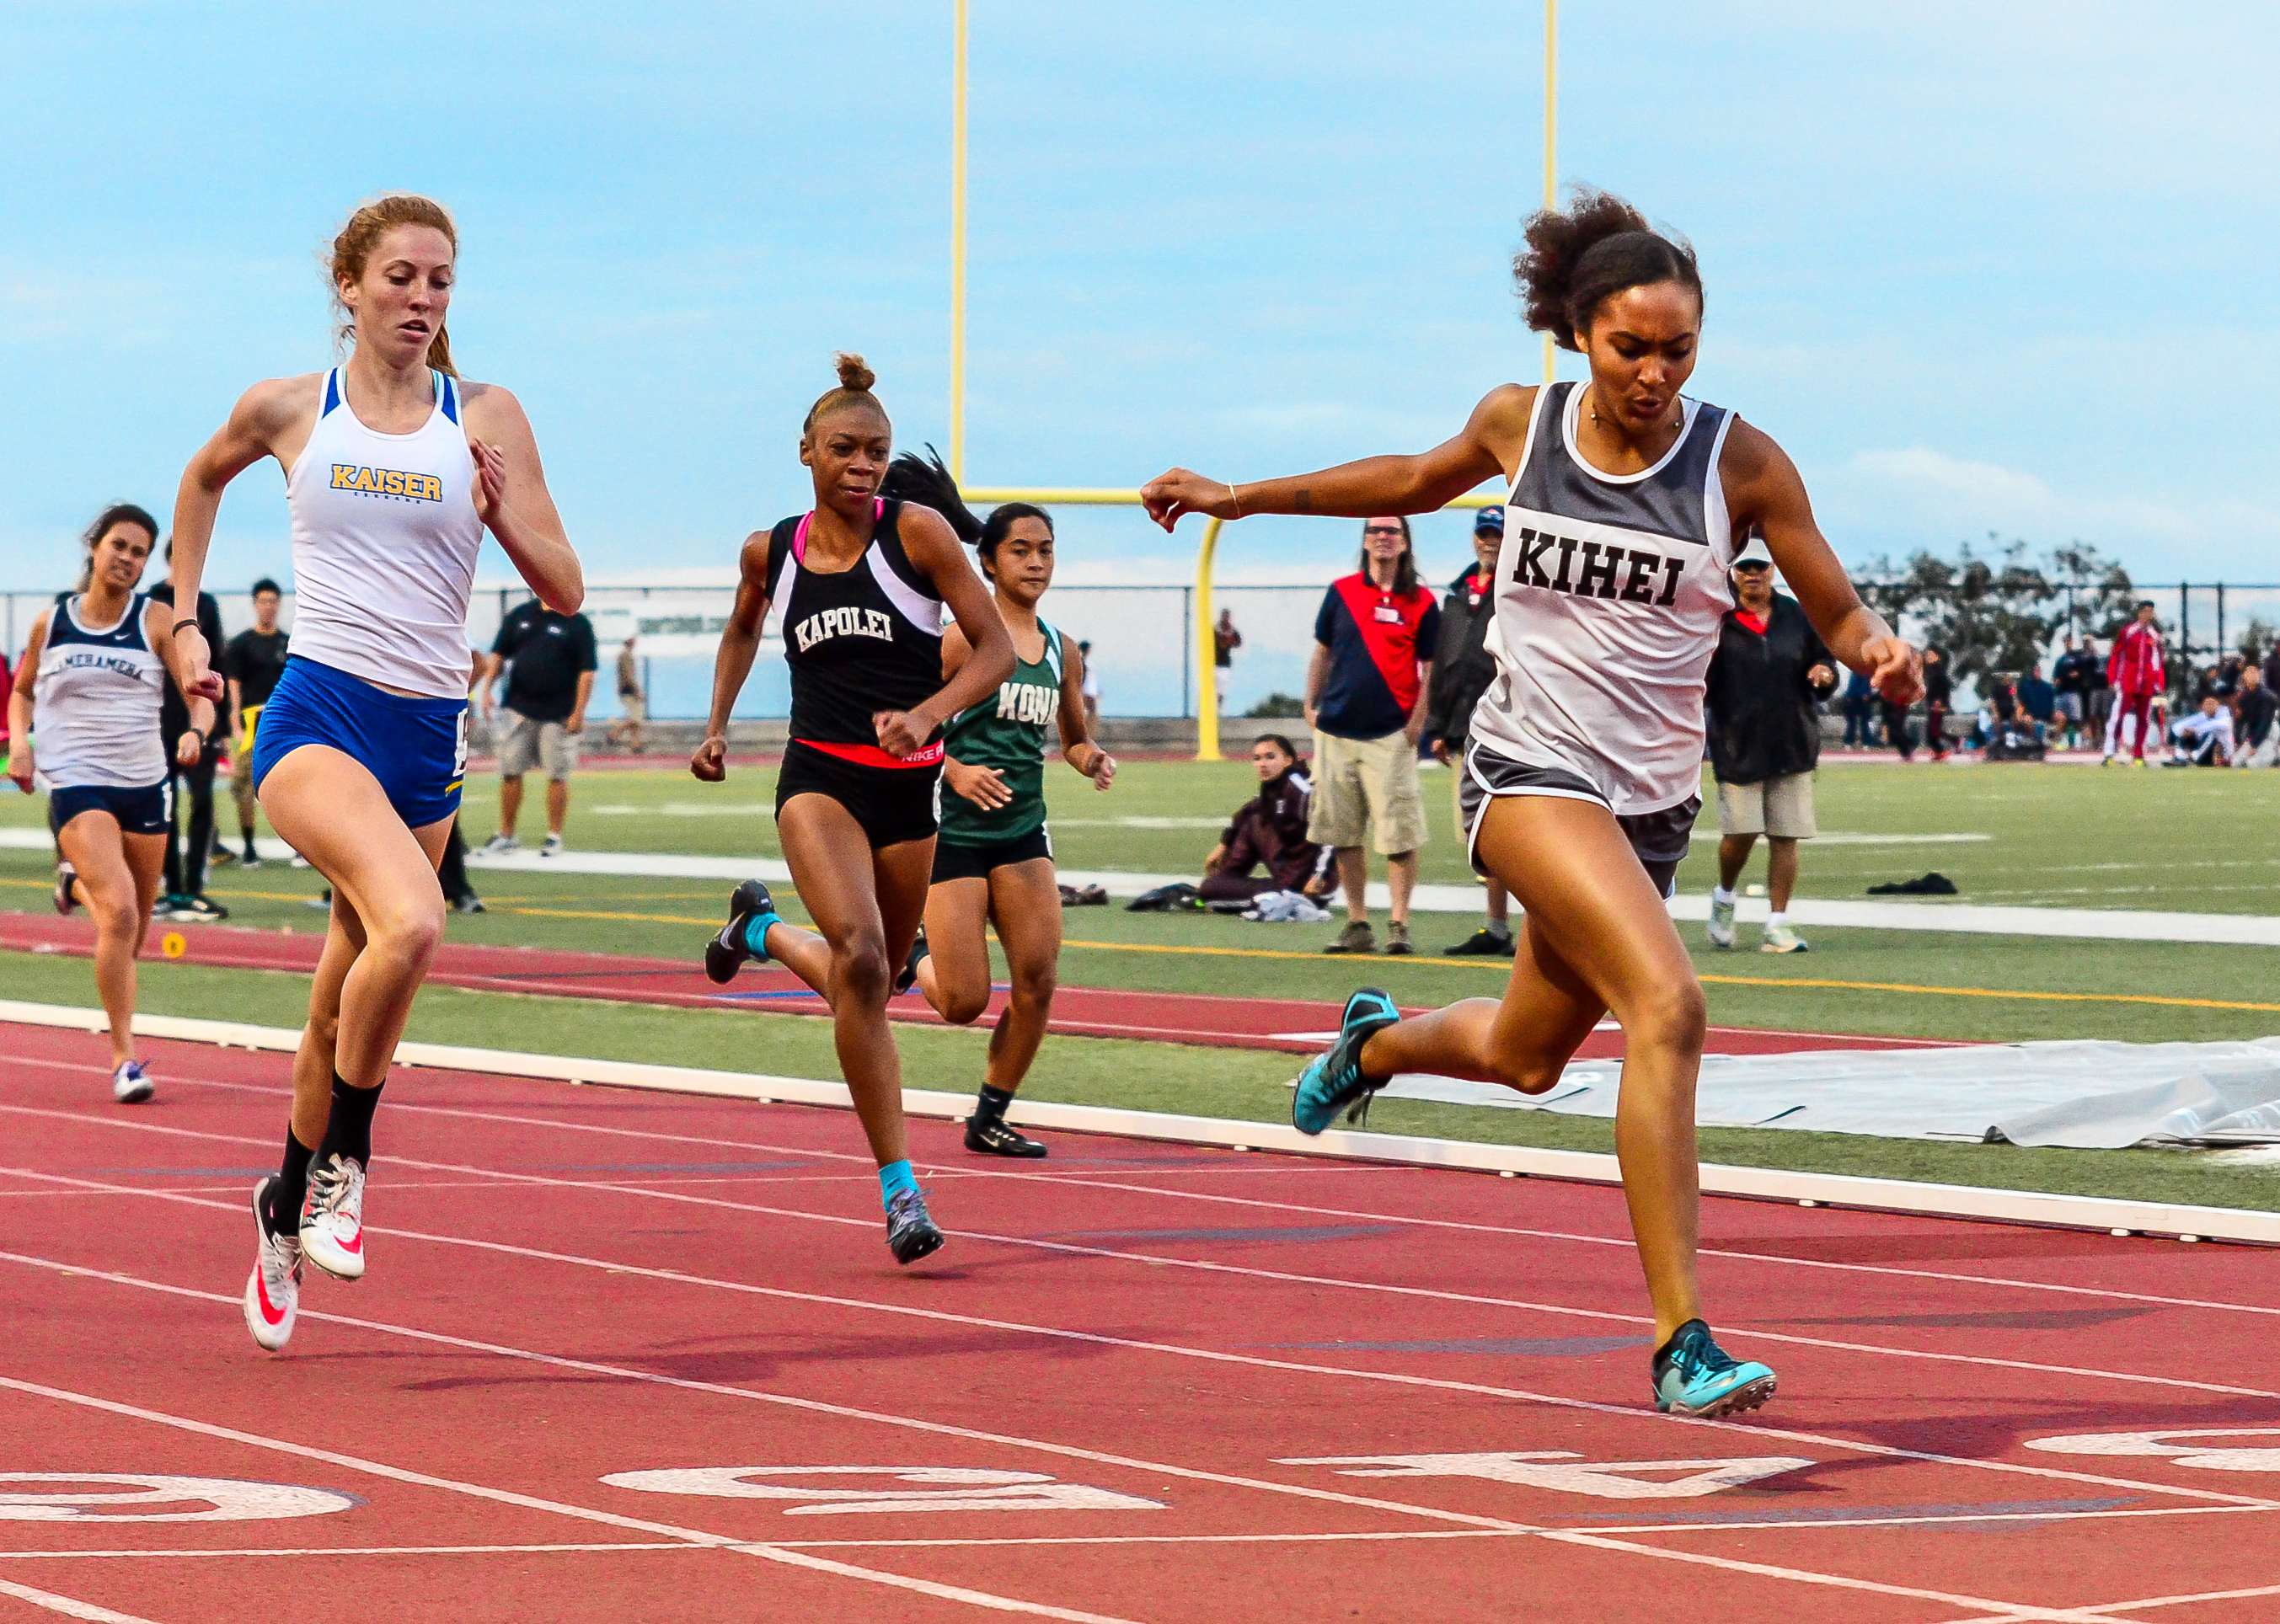 Kihei Charter's Maya Reynolds wins the 400-meter run to collect the MIL's only gold medal in the girls division last Saturday. Photo by Rodney S. Yap.